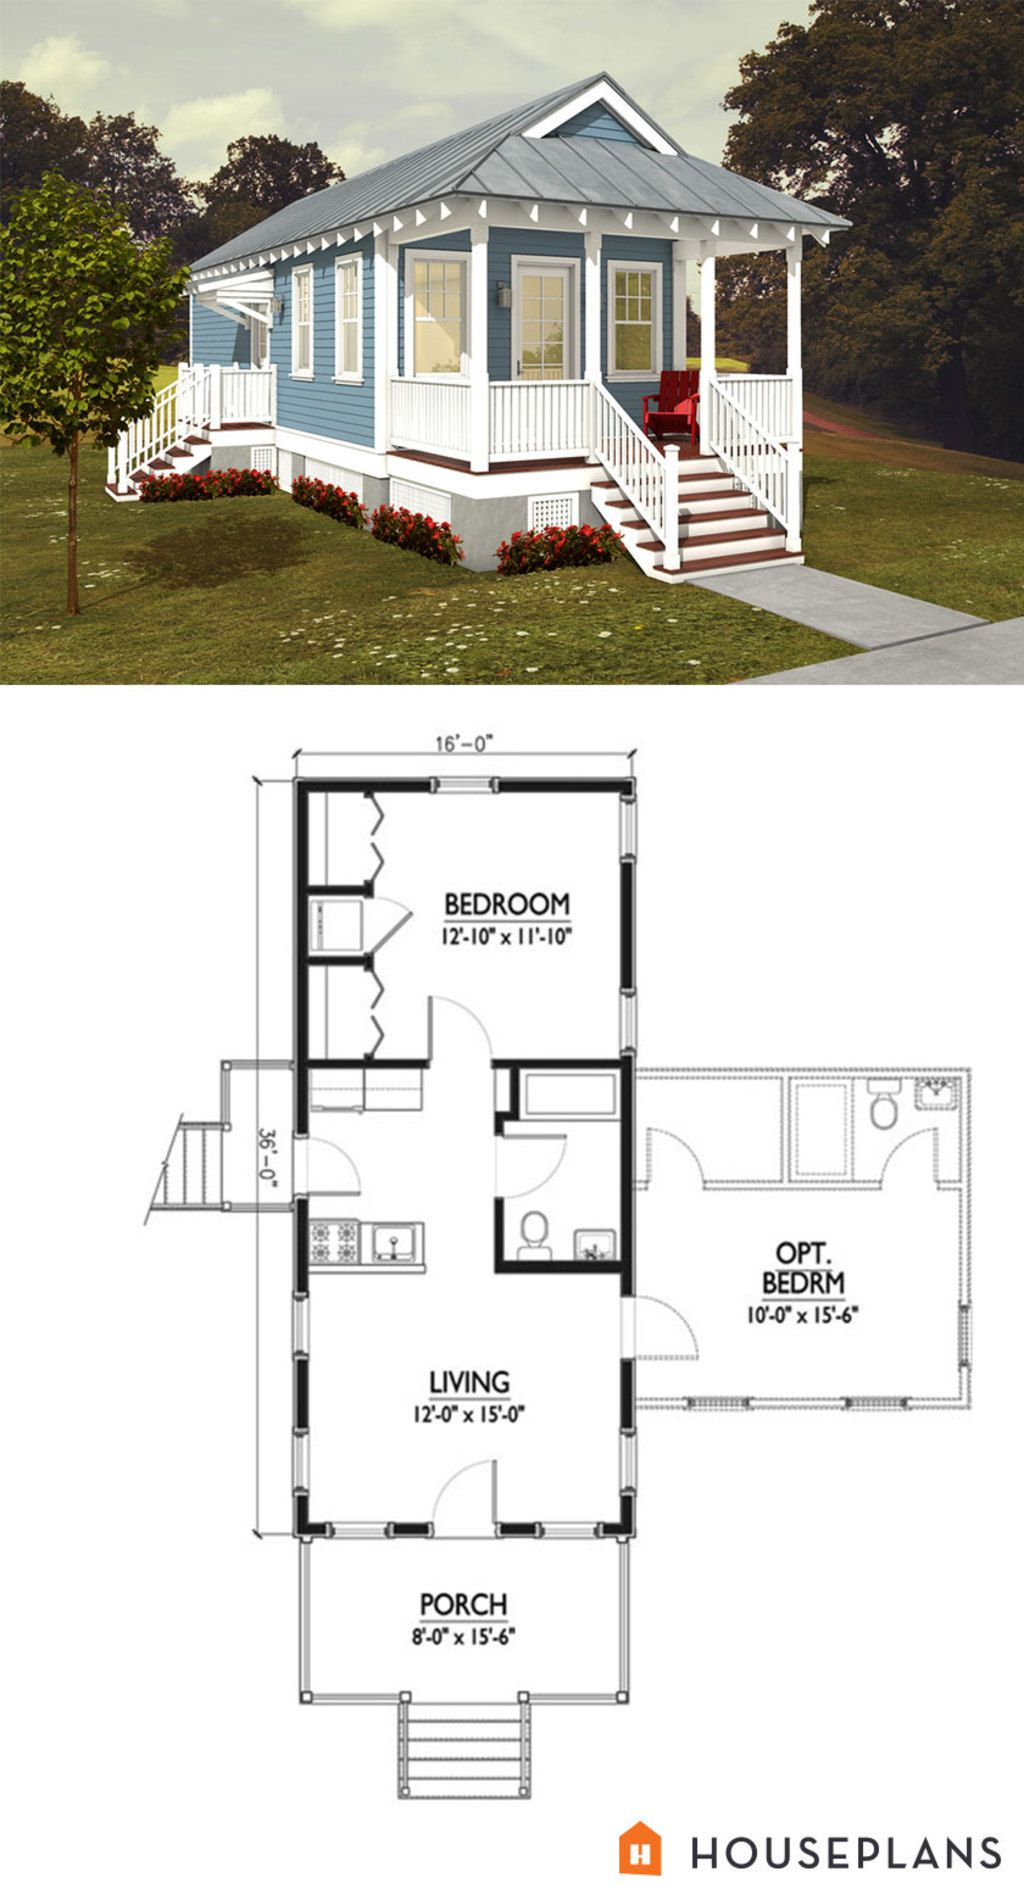 Cottage Style House Plan 1 Beds 1 Baths 576 Sq Ft Plan 514 6 Cottage Style House Plans Tiny House Floor Plans Cottage Floor Plans